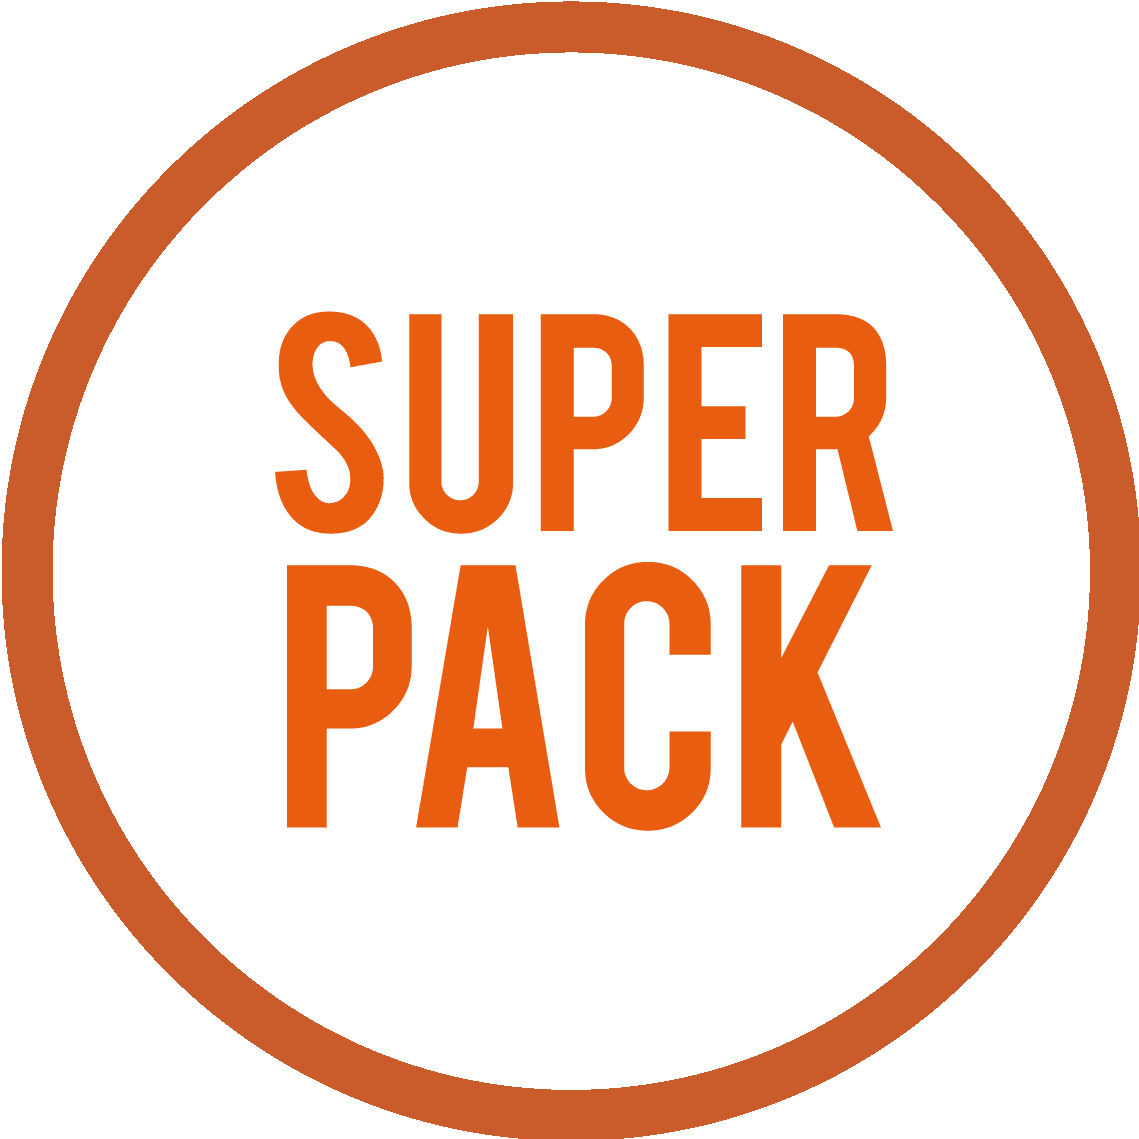 TAMIYA SUPER PACK AK-INTERACTIVE